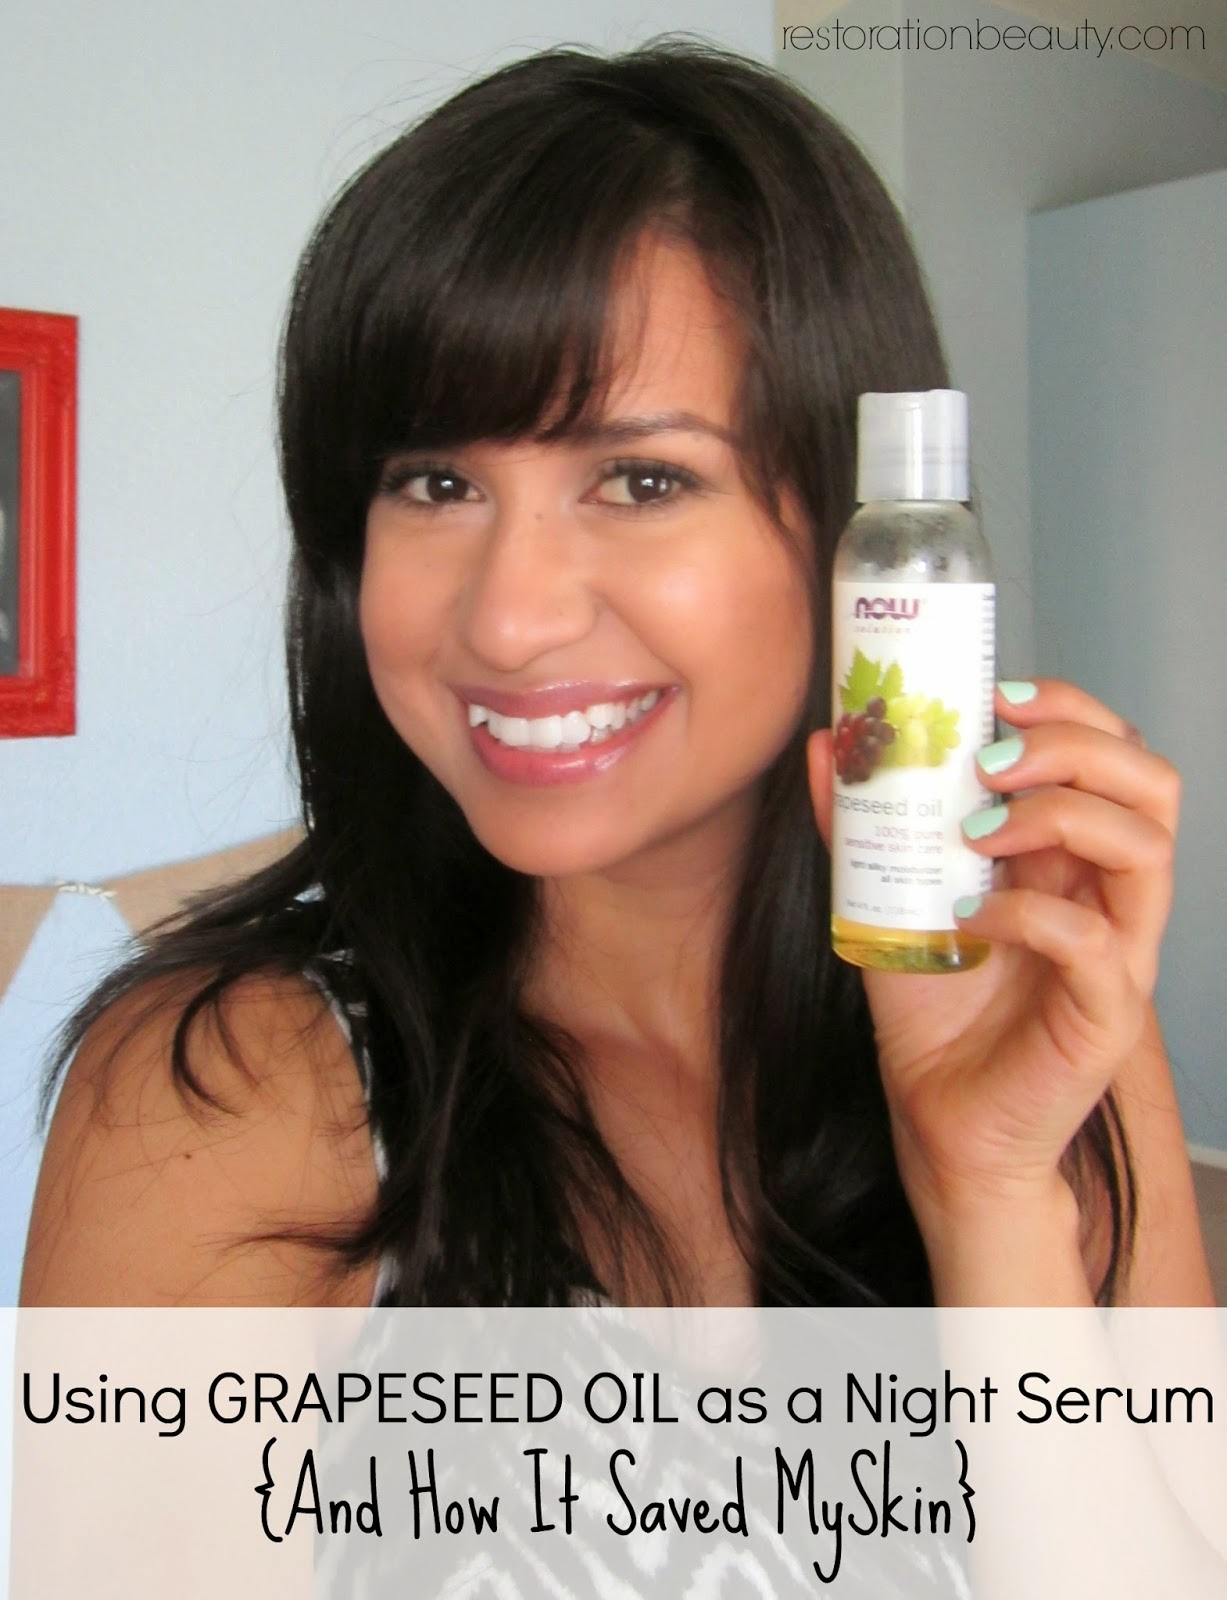 Restoration Beauty: Using Grapeseed Oil as a Night Serum